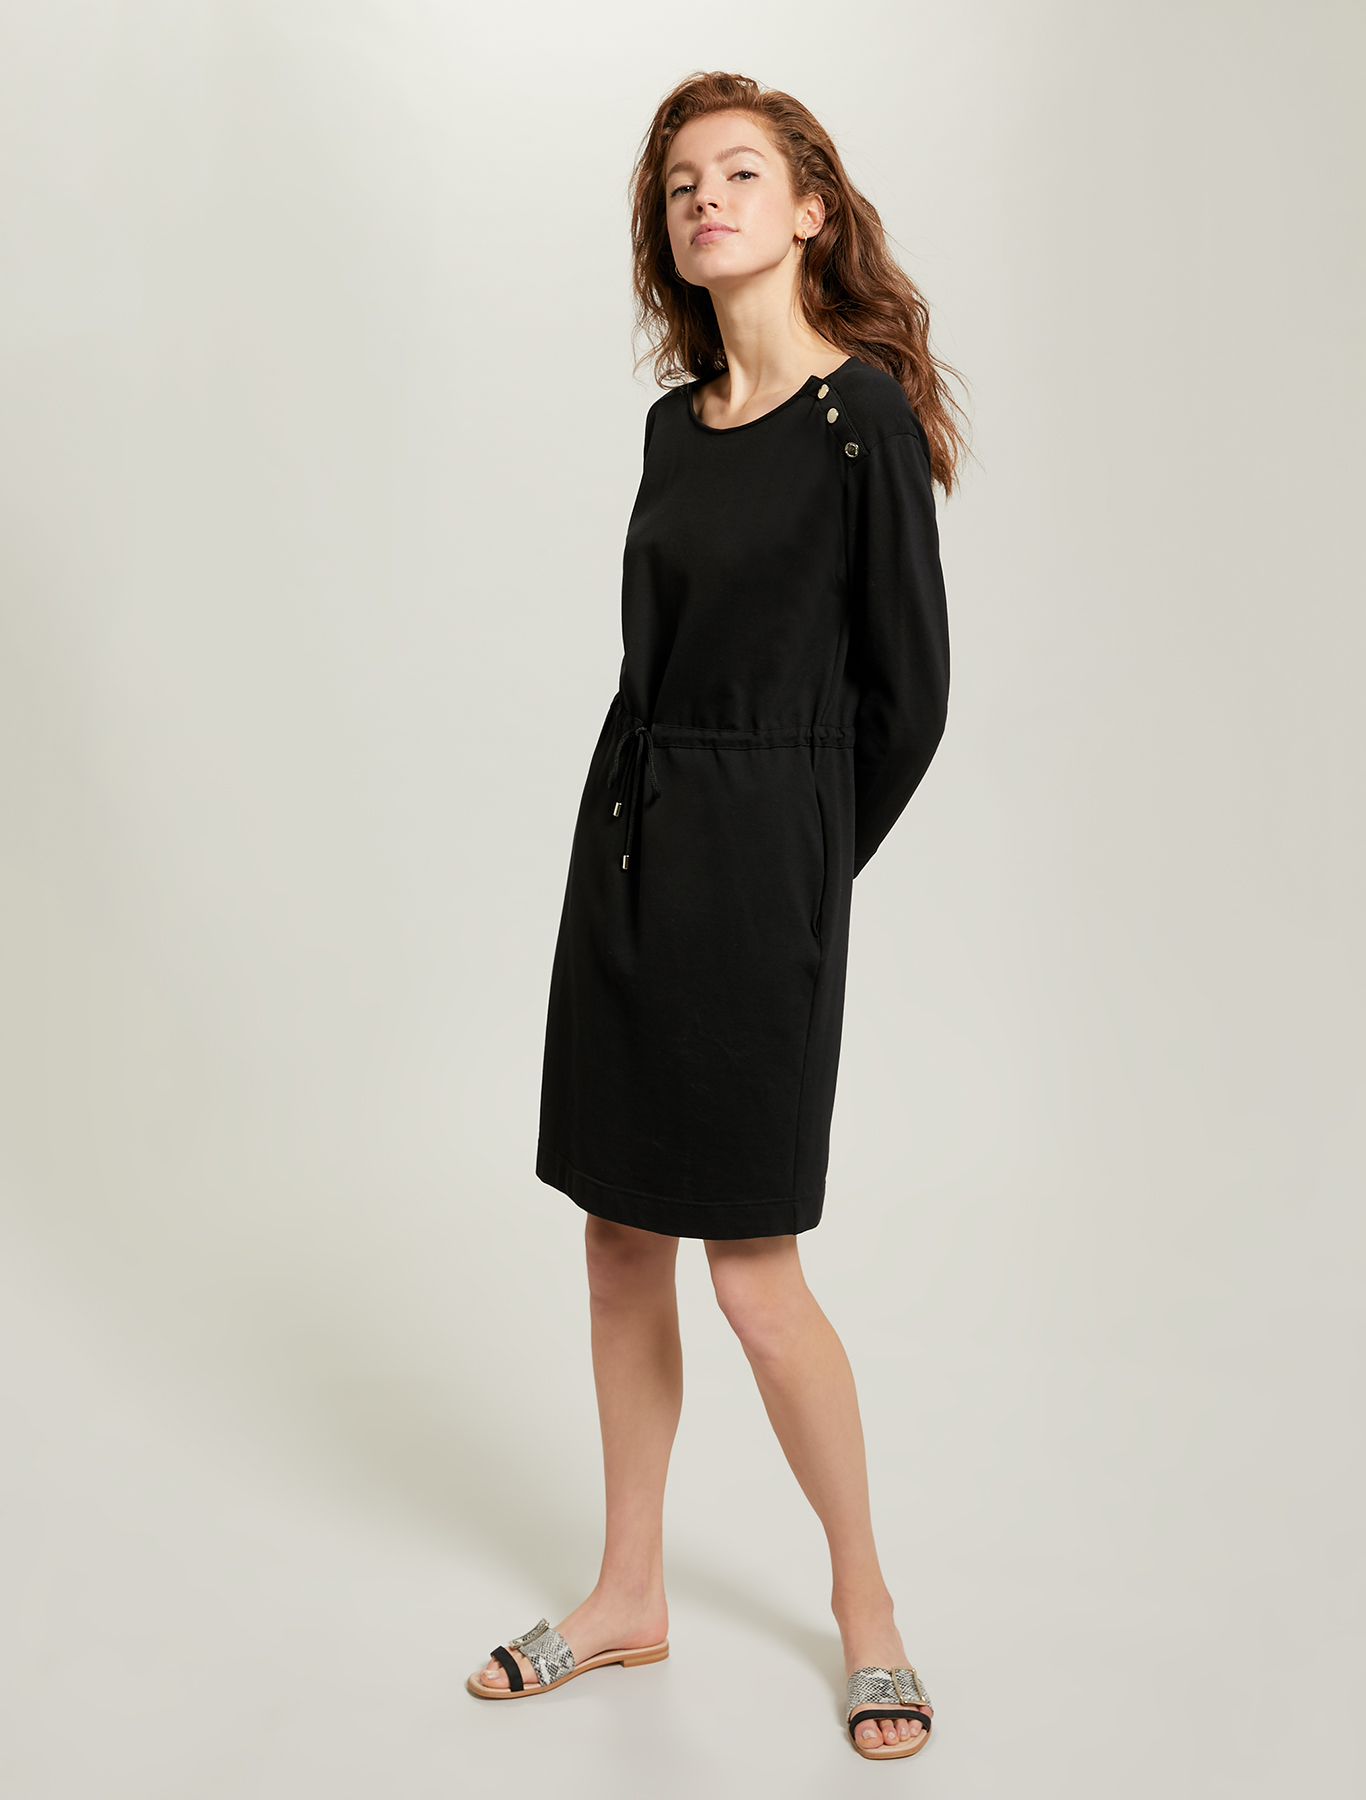 Piqué jersey dress - black - pennyblack